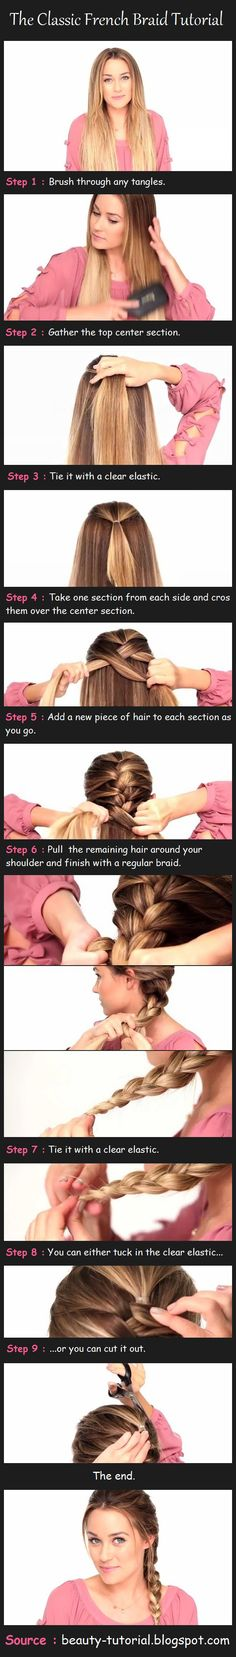 The Classic French Braid Tutorial